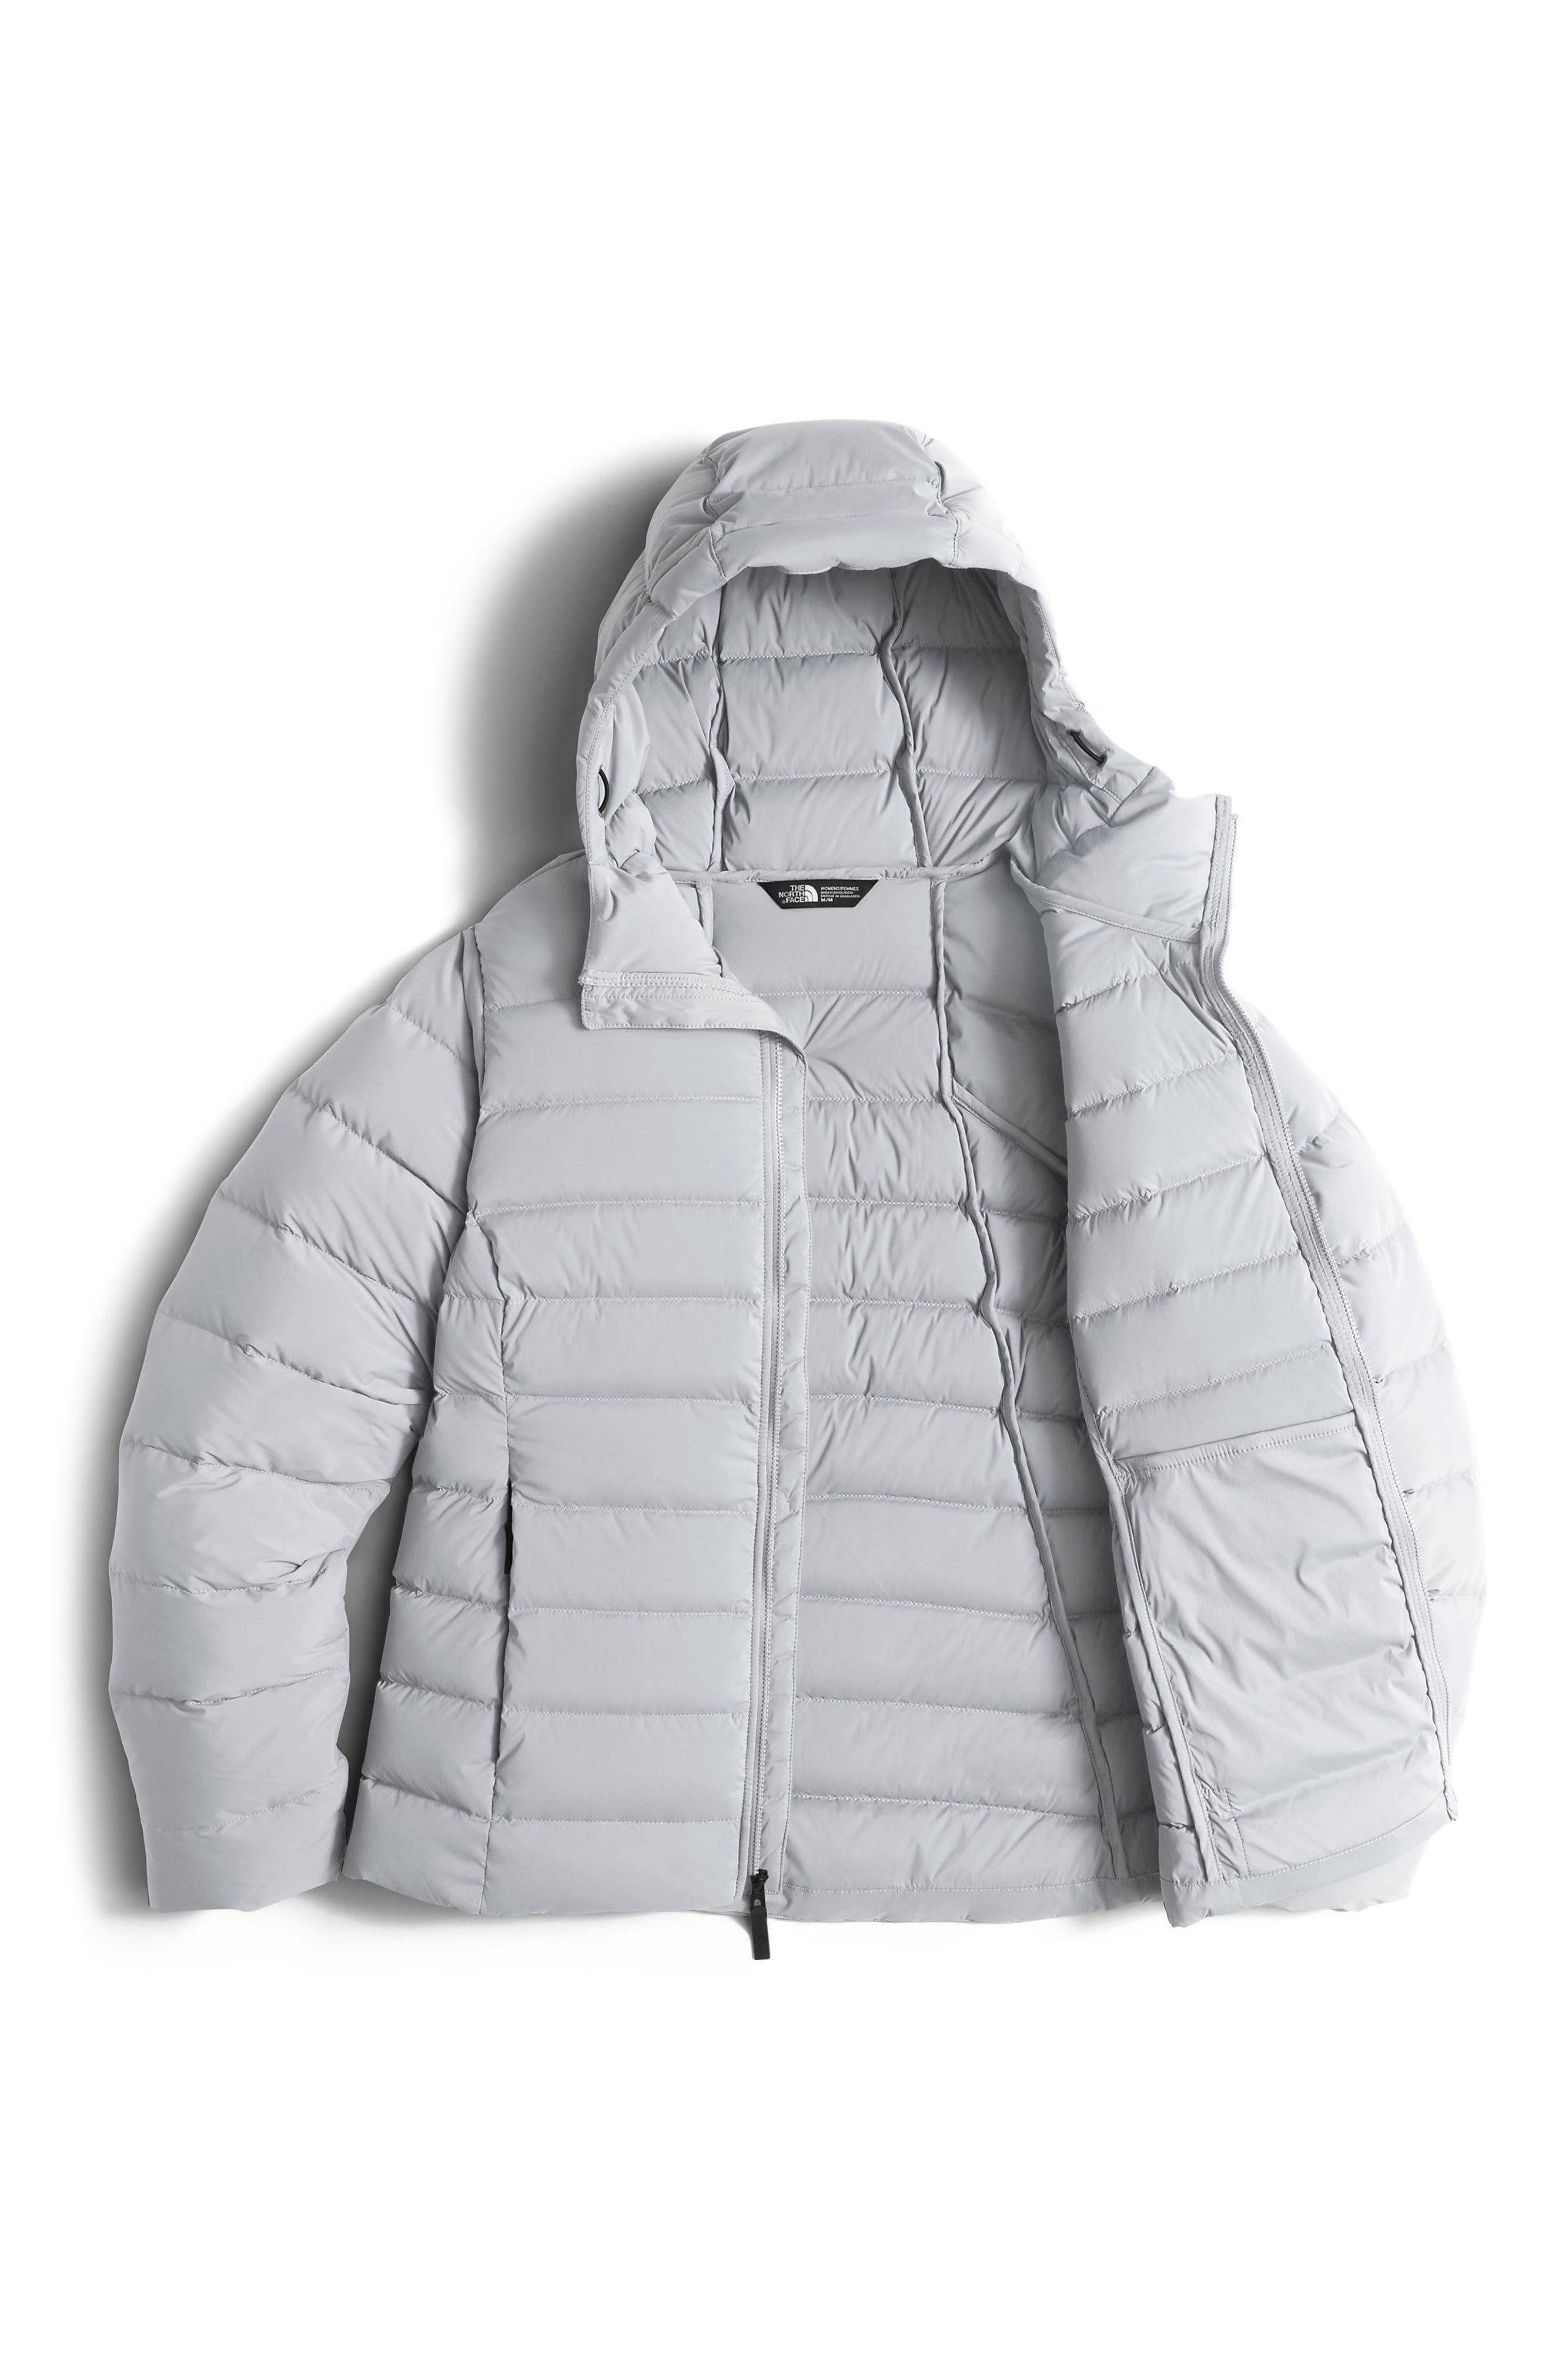 W Hooded Stretch Down Jacket,                             Alternate thumbnail 2, color,                             030